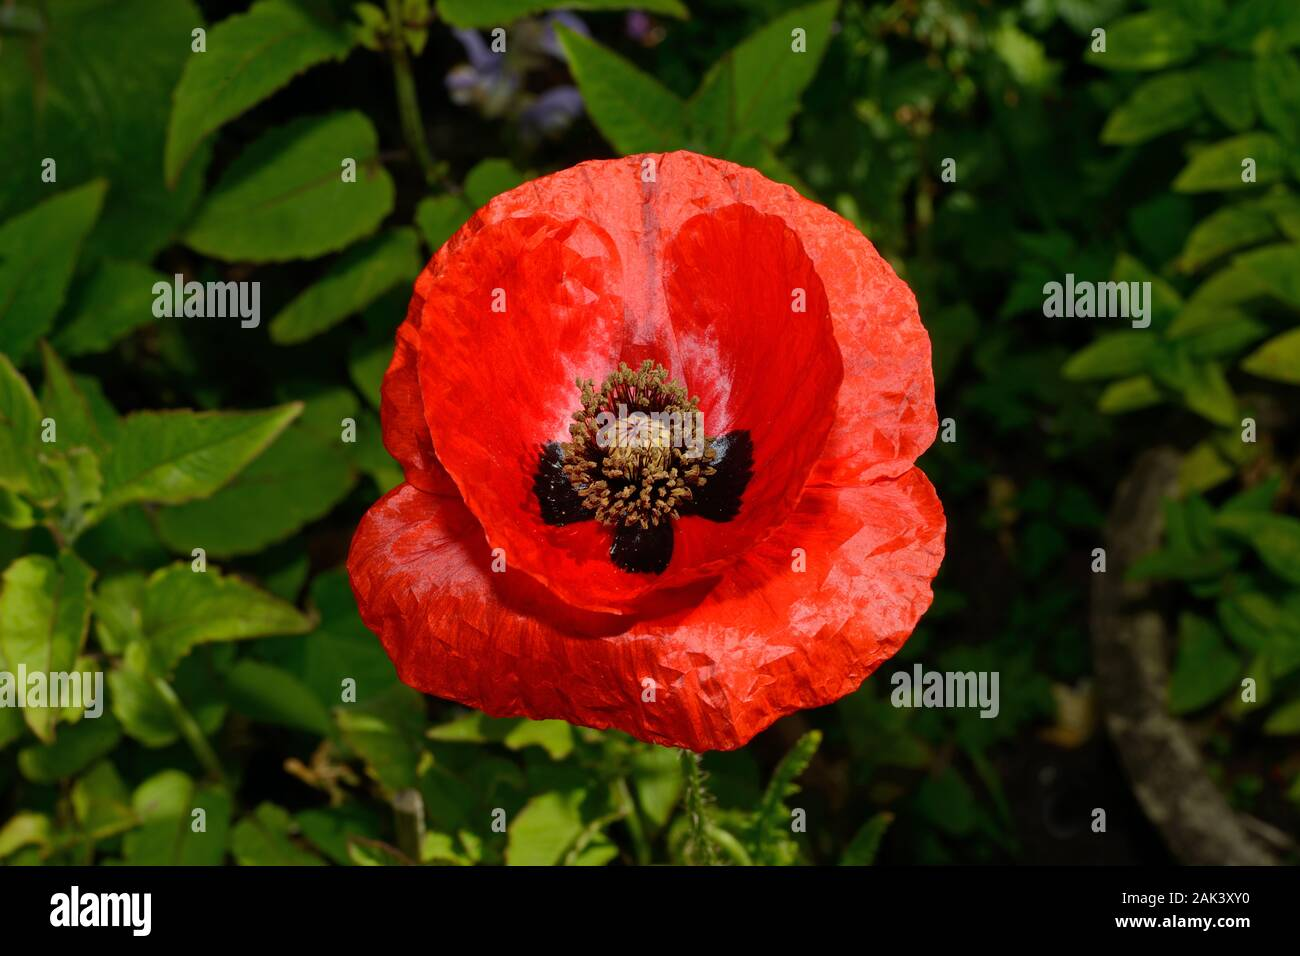 Papaver hybridum (rough poppy) has a submediterranean-subatlantic distribution and commonly occurs in arable crops and other disturbed habitats. Stock Photo